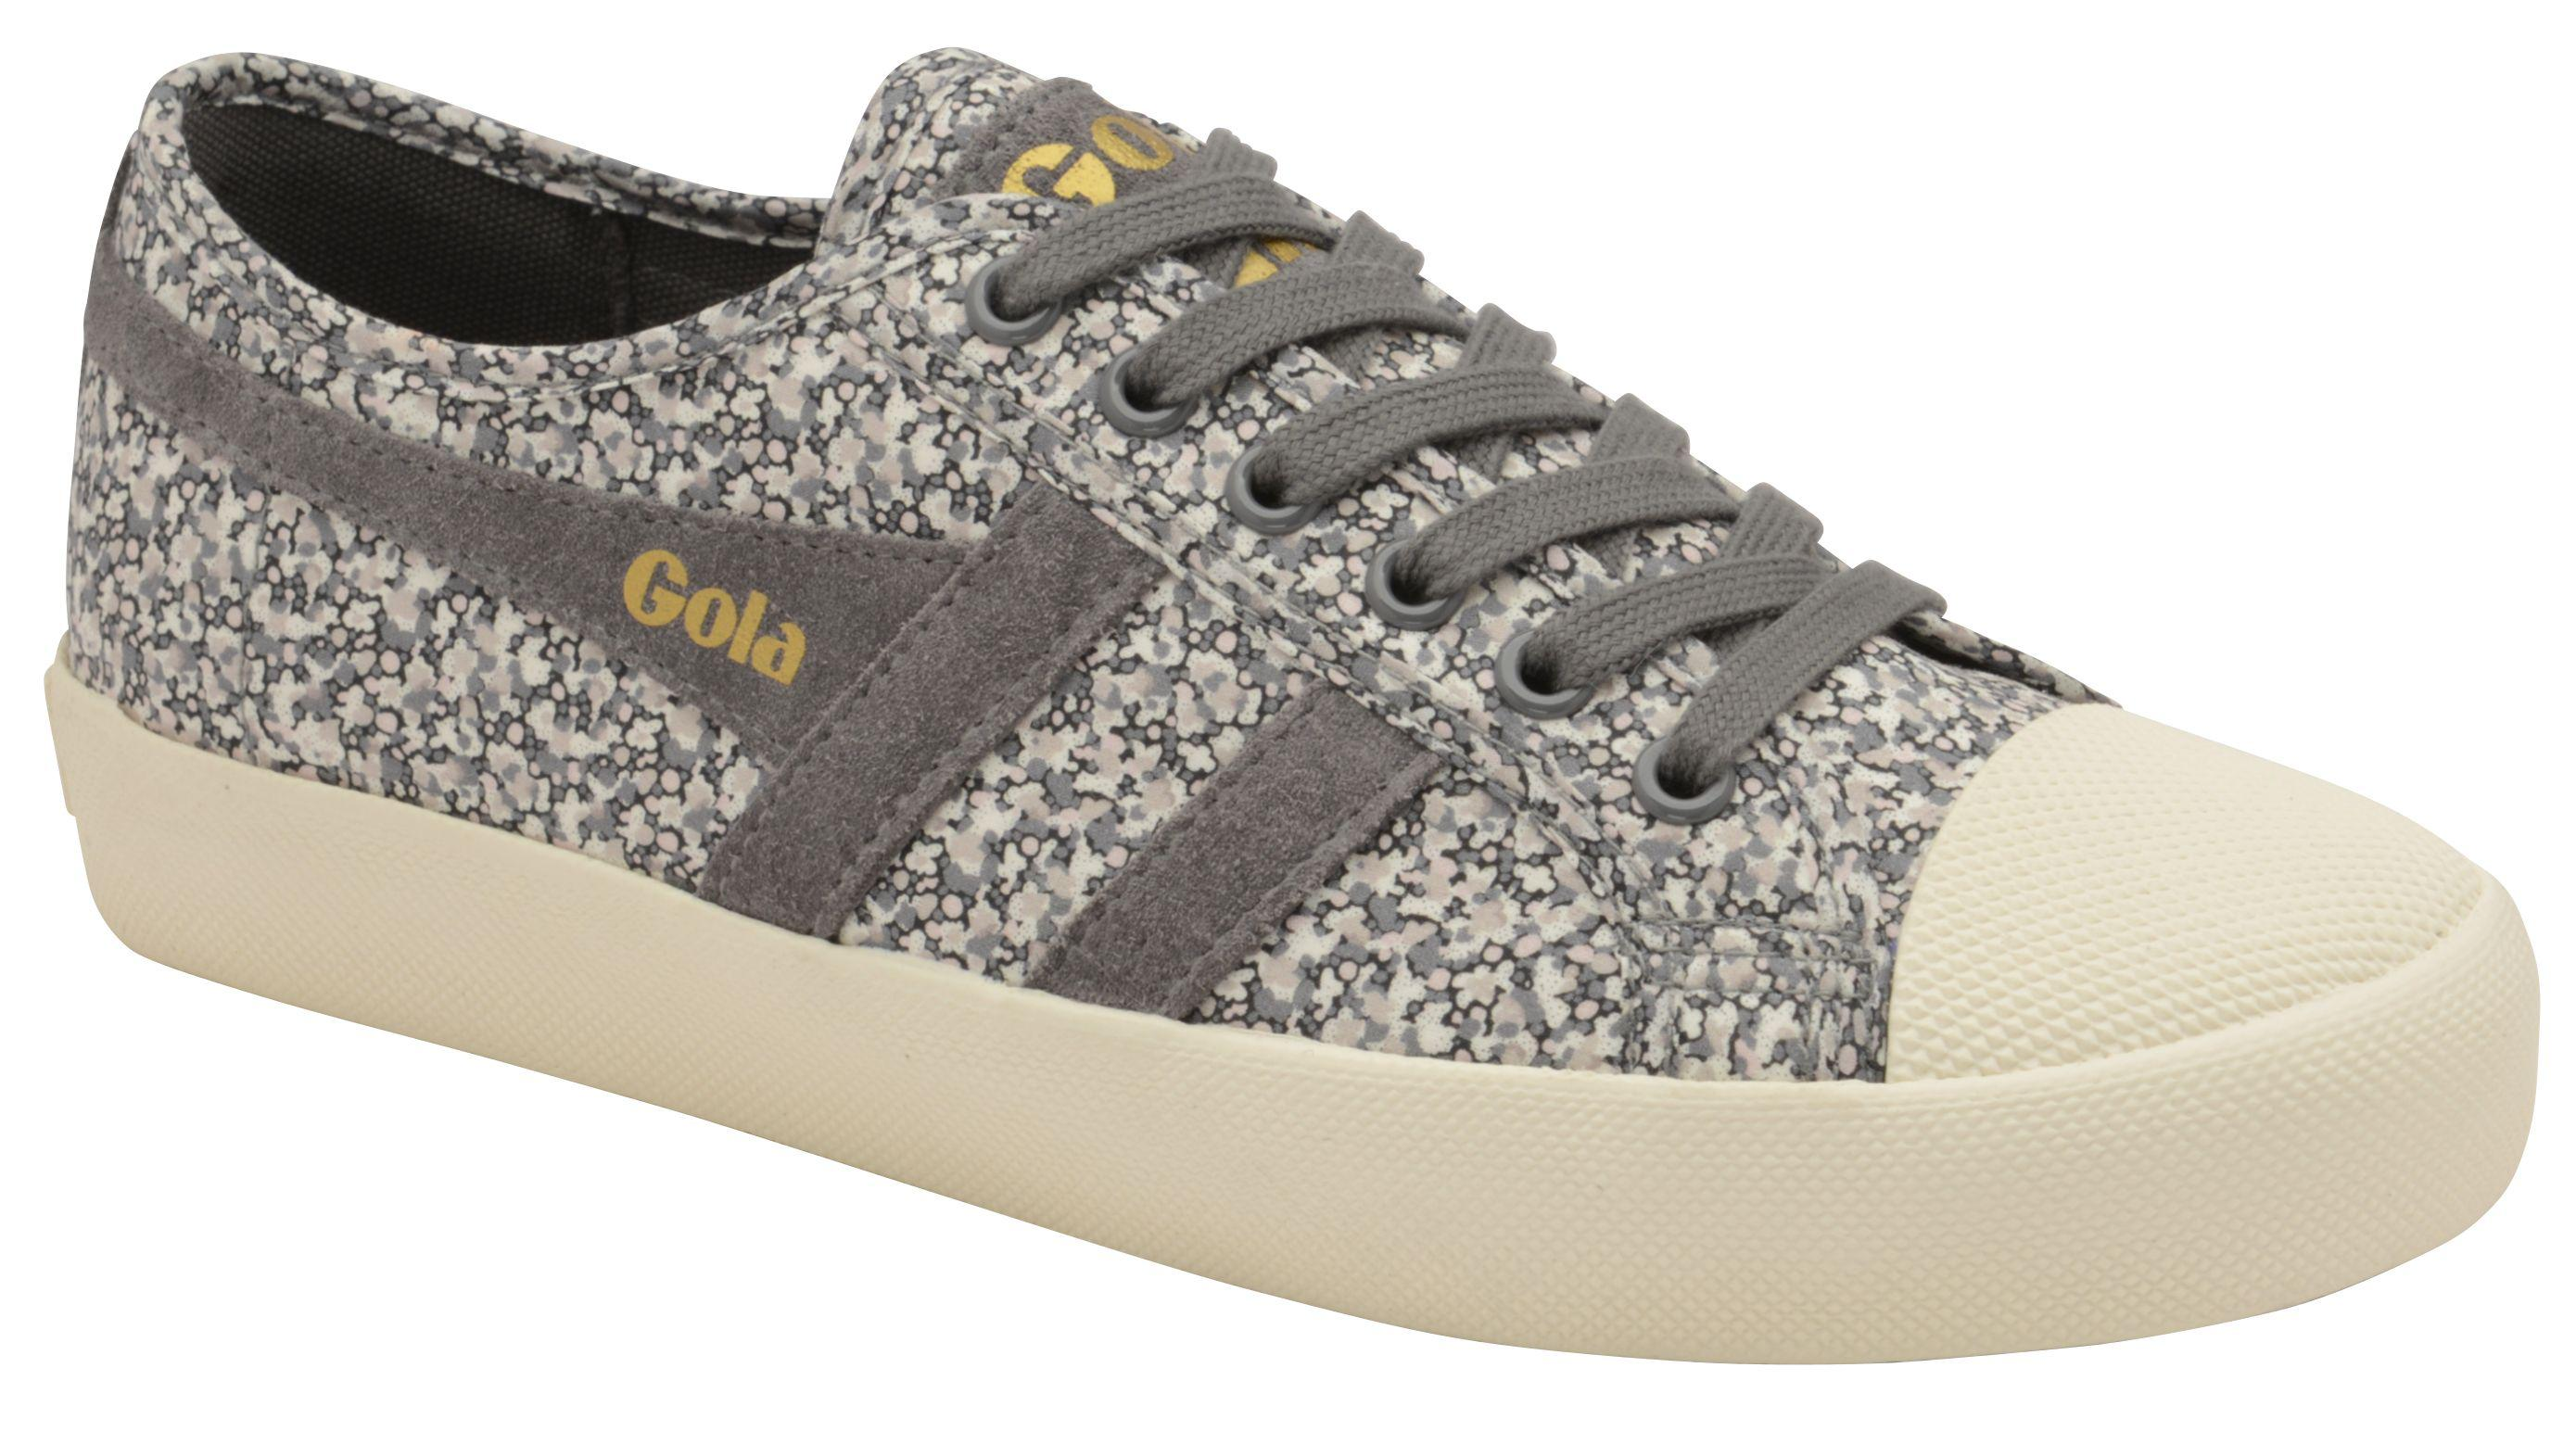 Womens Coaster Liberty Pp Grey Trainers Gola bxygWk